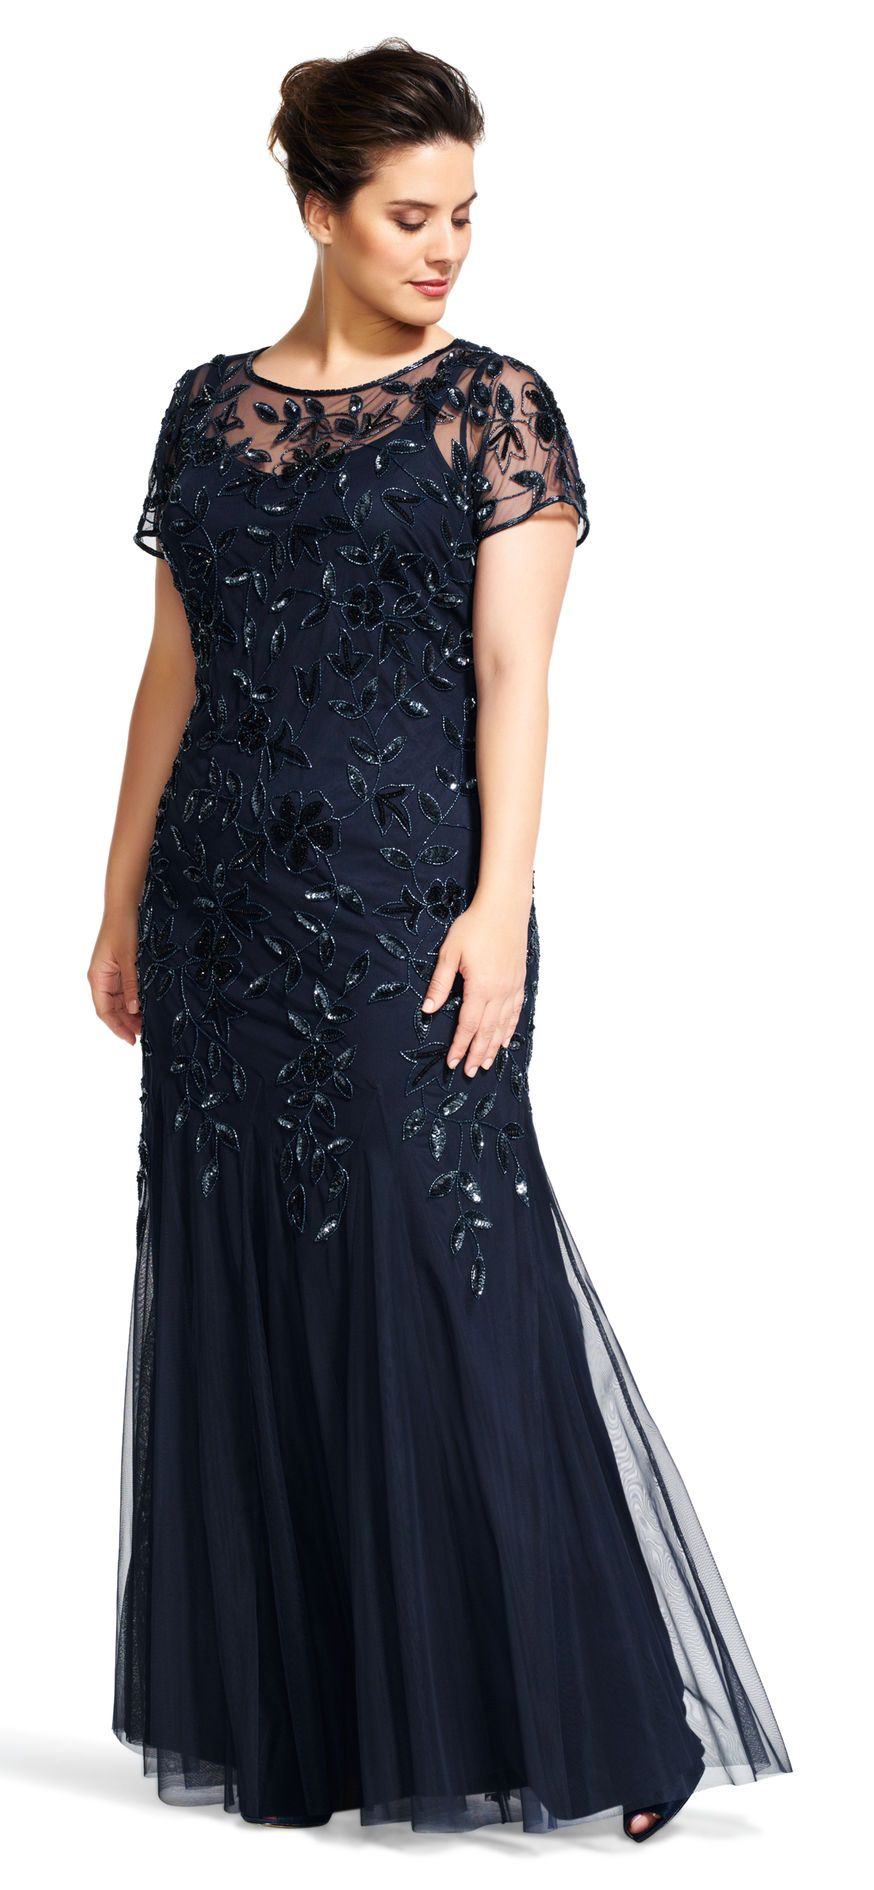 56d61afc6dd0 Floral Beaded Godet Gown with Sheer Short Sleeves